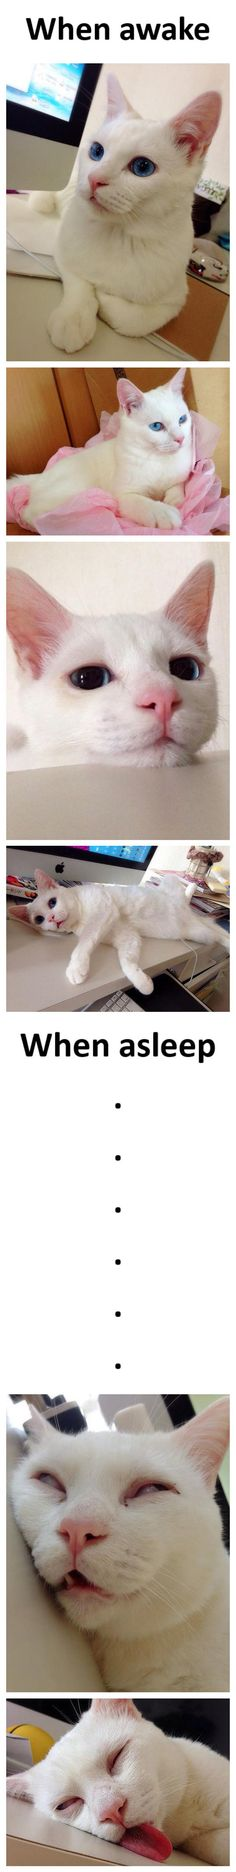 When A Pretty Cat Goes To Sleep